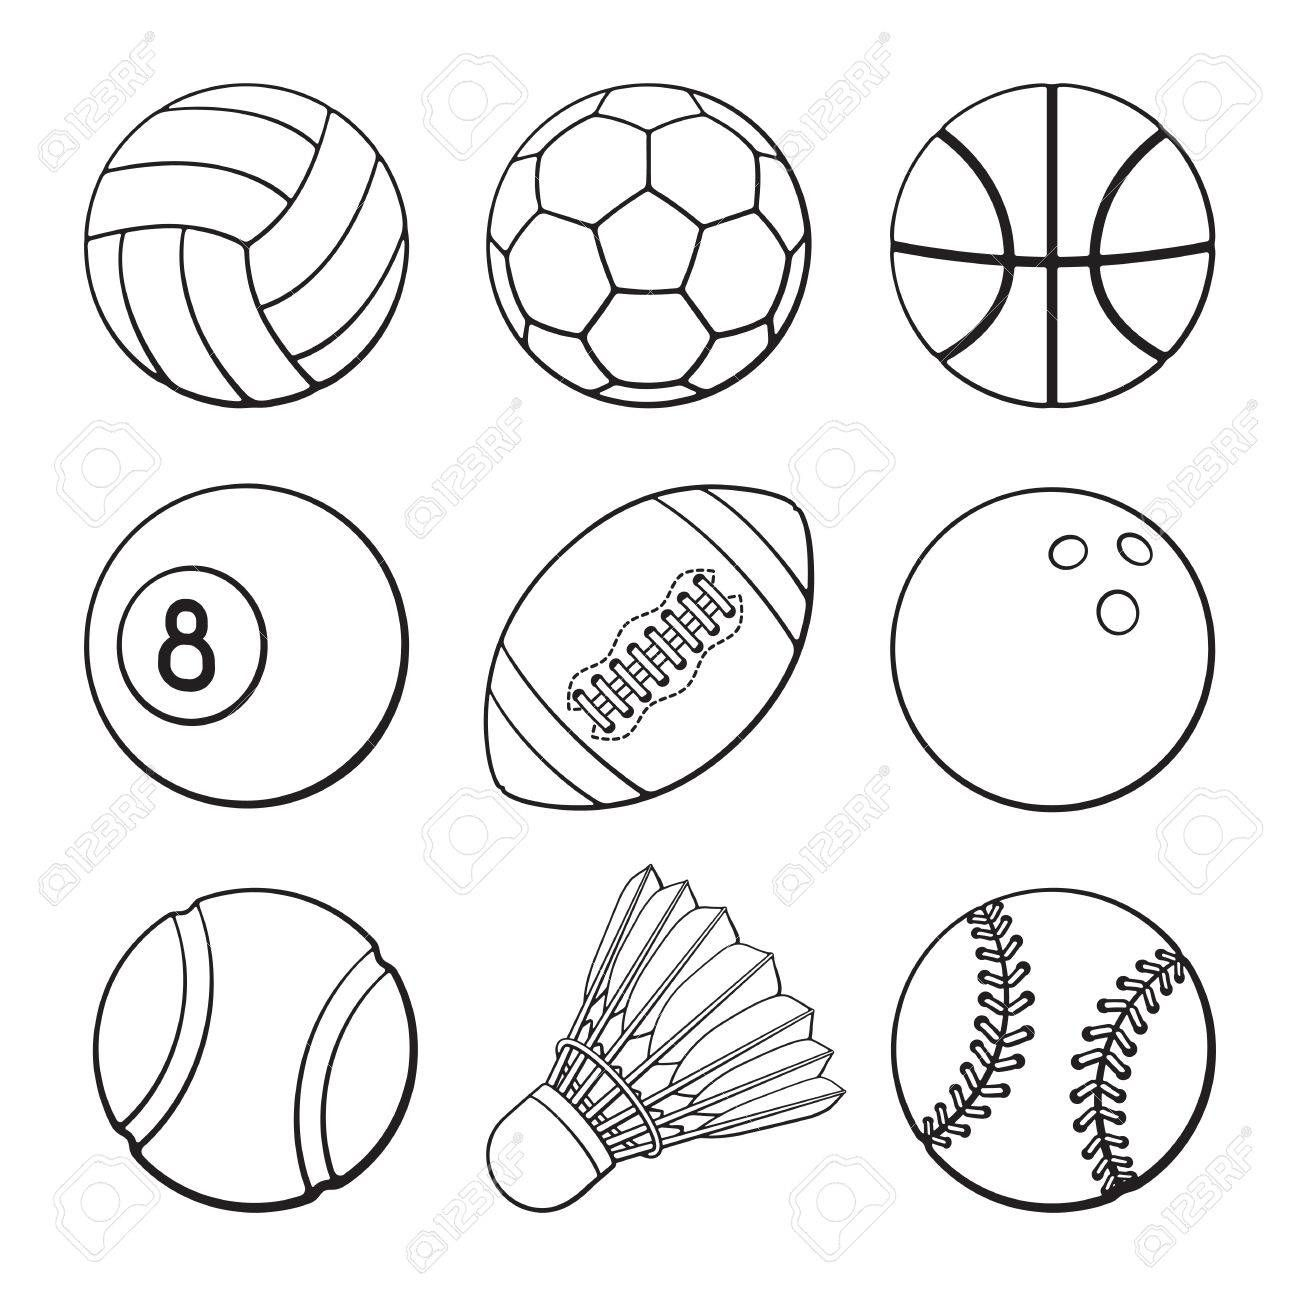 A Vector Illustration Hand Drawn Doodles Of Football Soccer Basketball Volleyball Baseball Tennis Badmin Sports Balls Cartoon Sketches How To Draw Hands